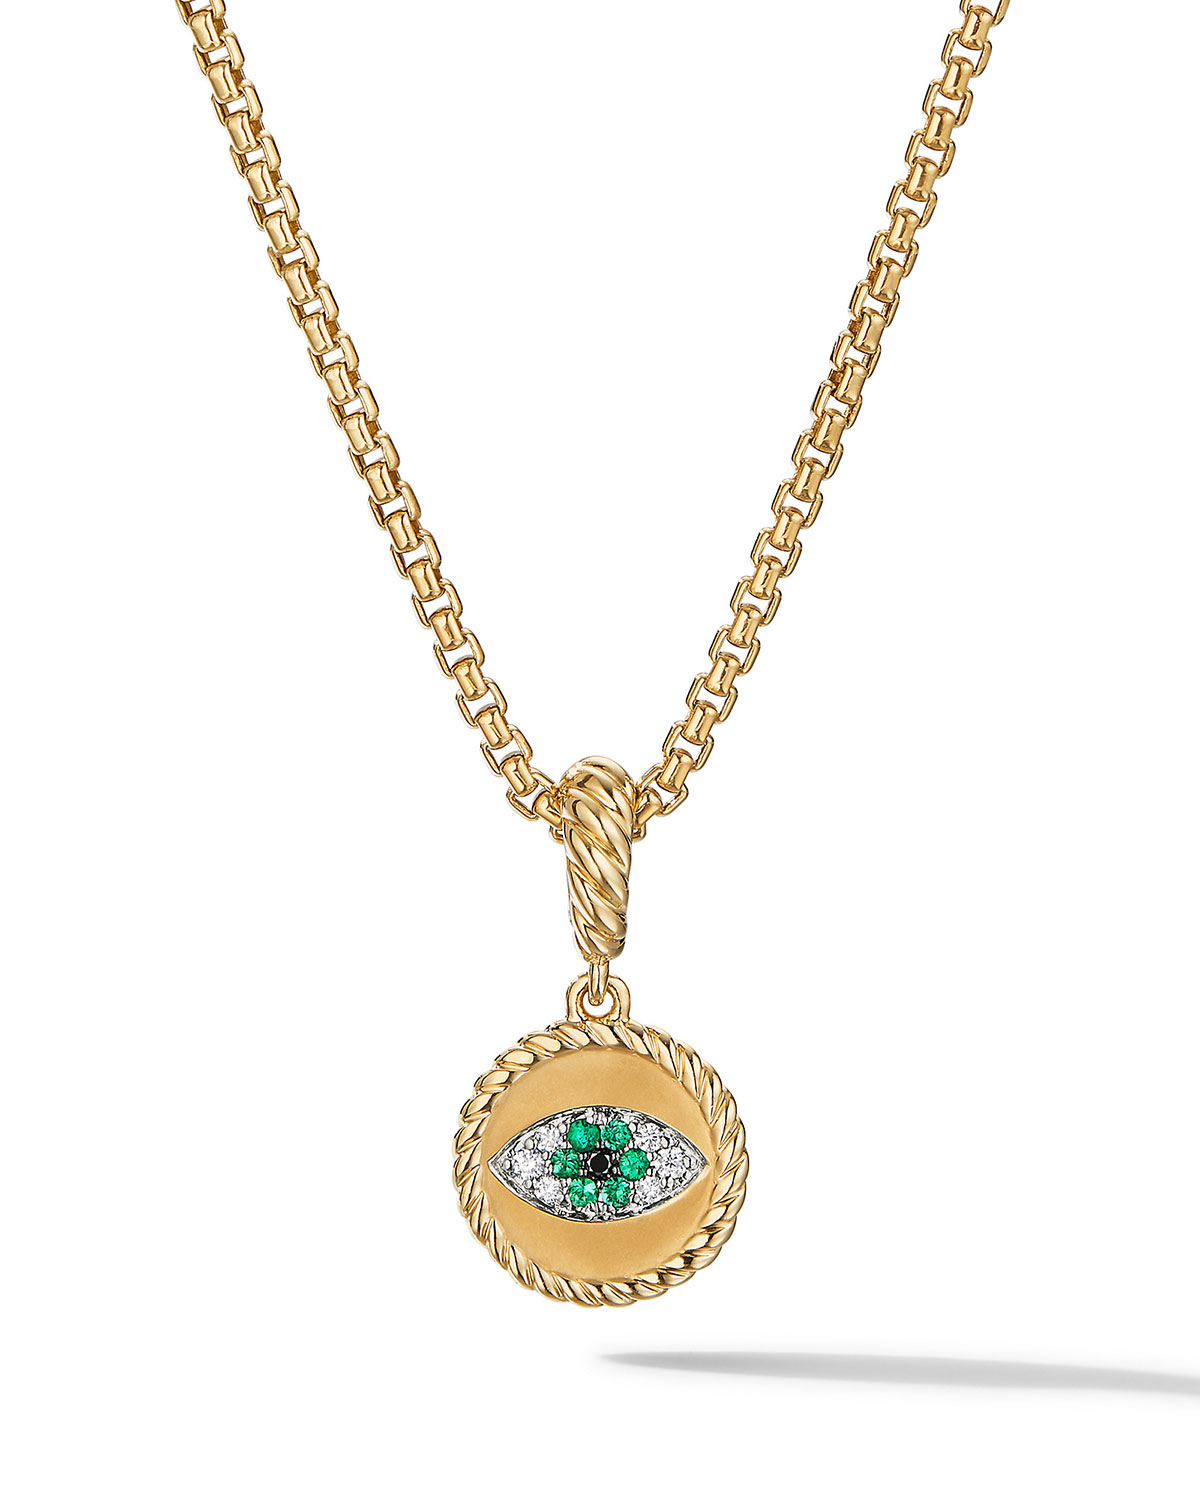 David Yurman Jewelrys EVIL EYE AMULET IN 18K YELLOW GOLD WITH PAVE EMERALDS AND DIAMONDS